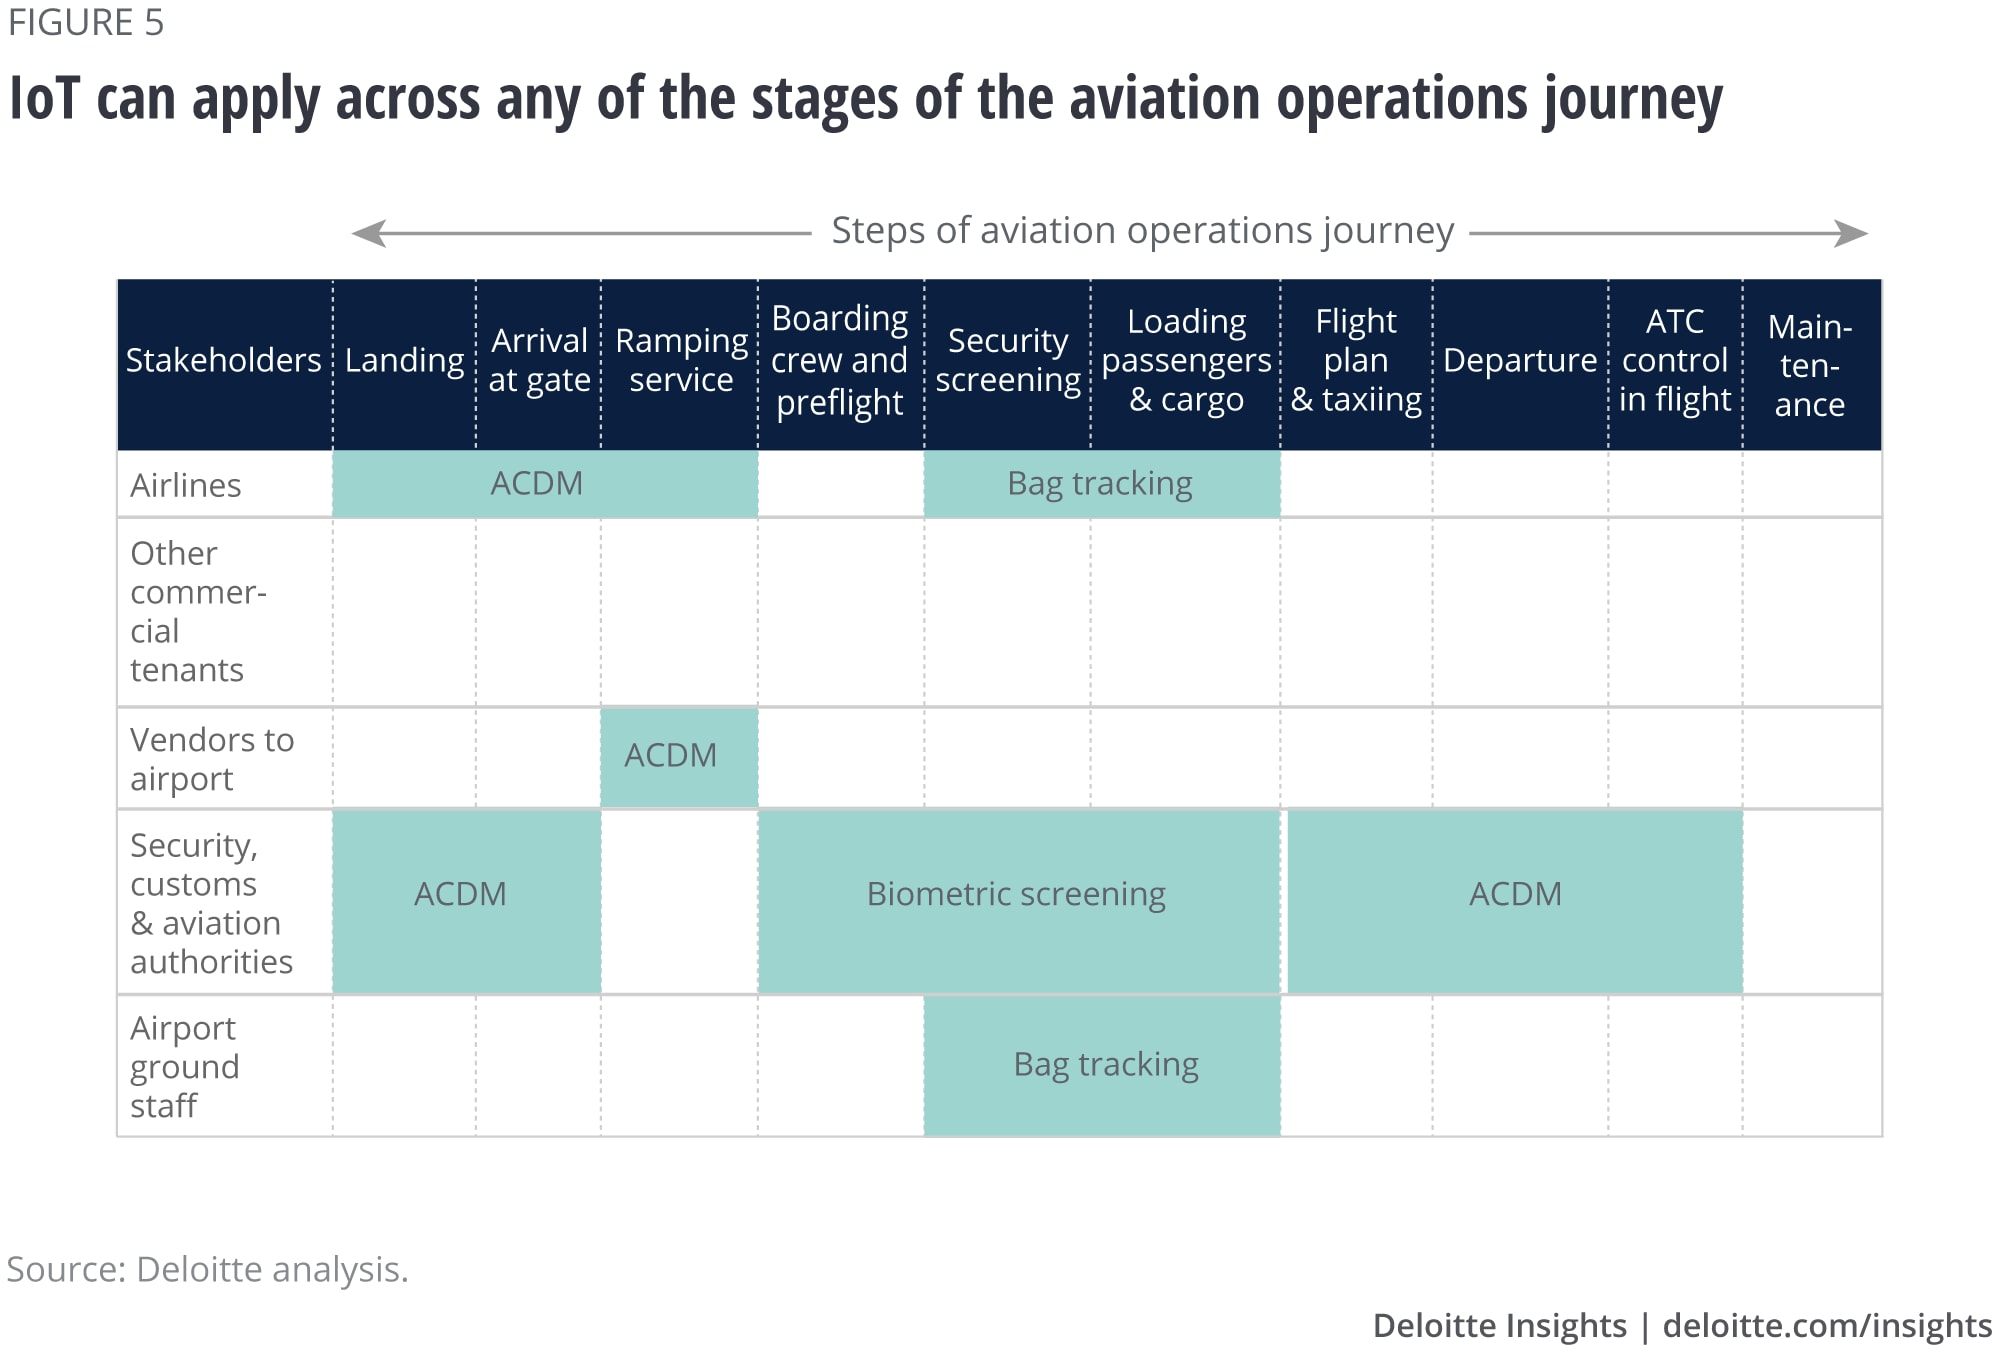 IoT can apply across any of the stages of the aviation operations journey